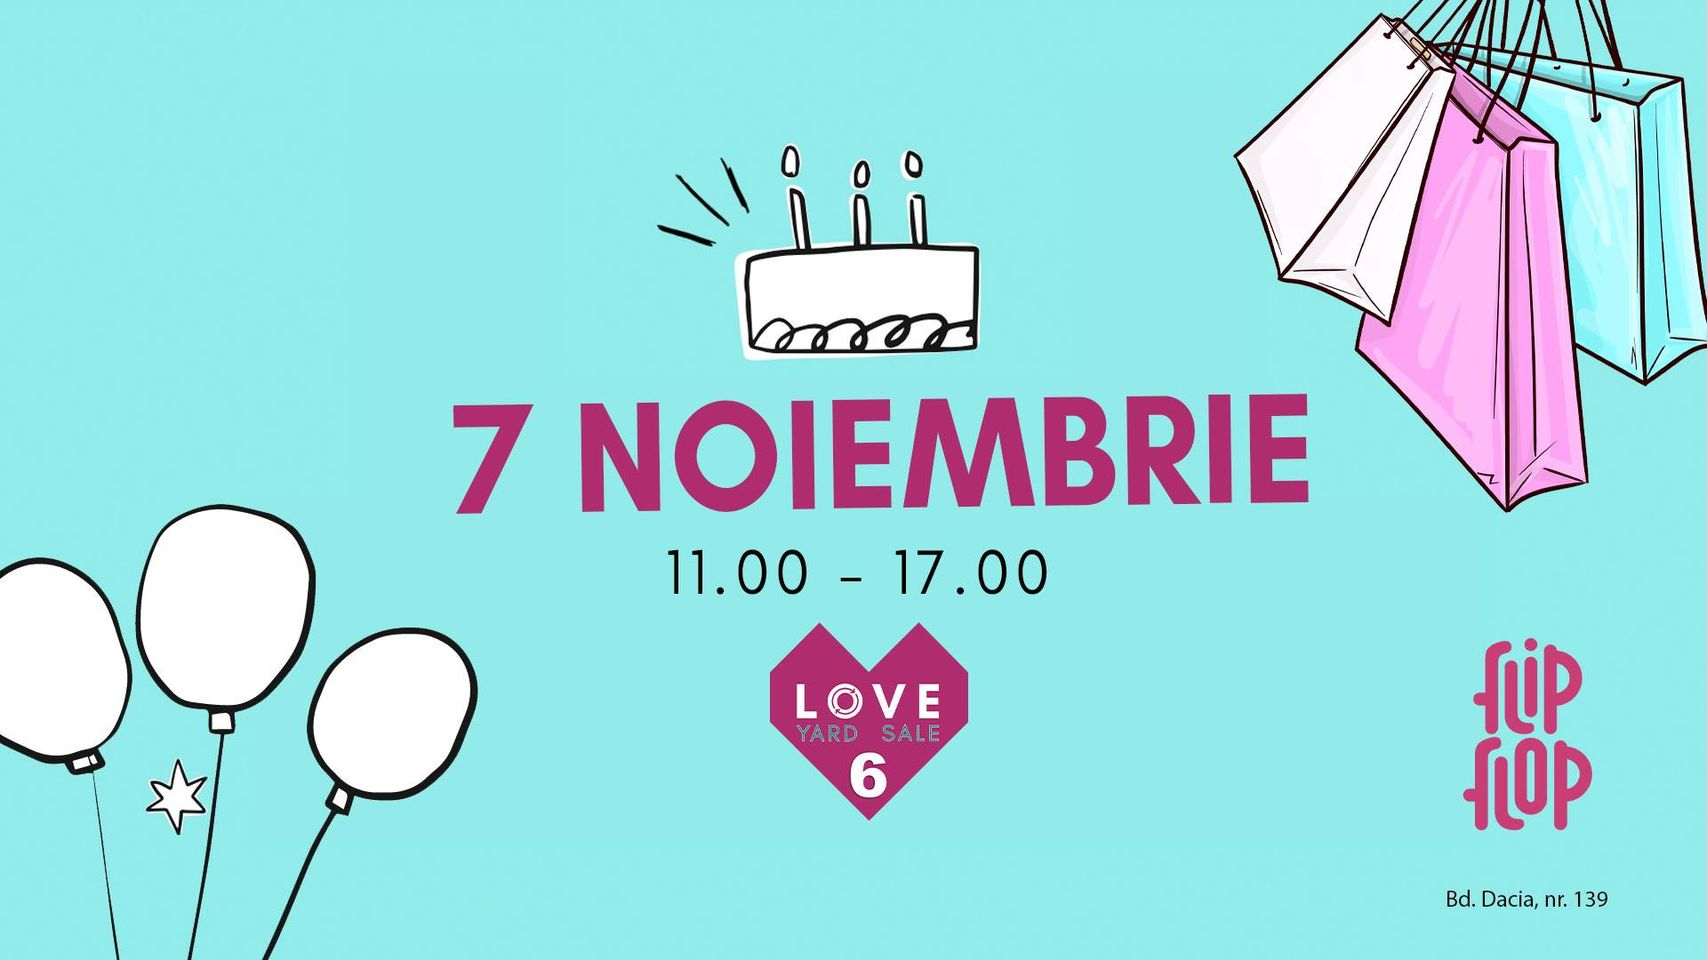 evenimente weekend 6-8 nov  love yard sale aniversar